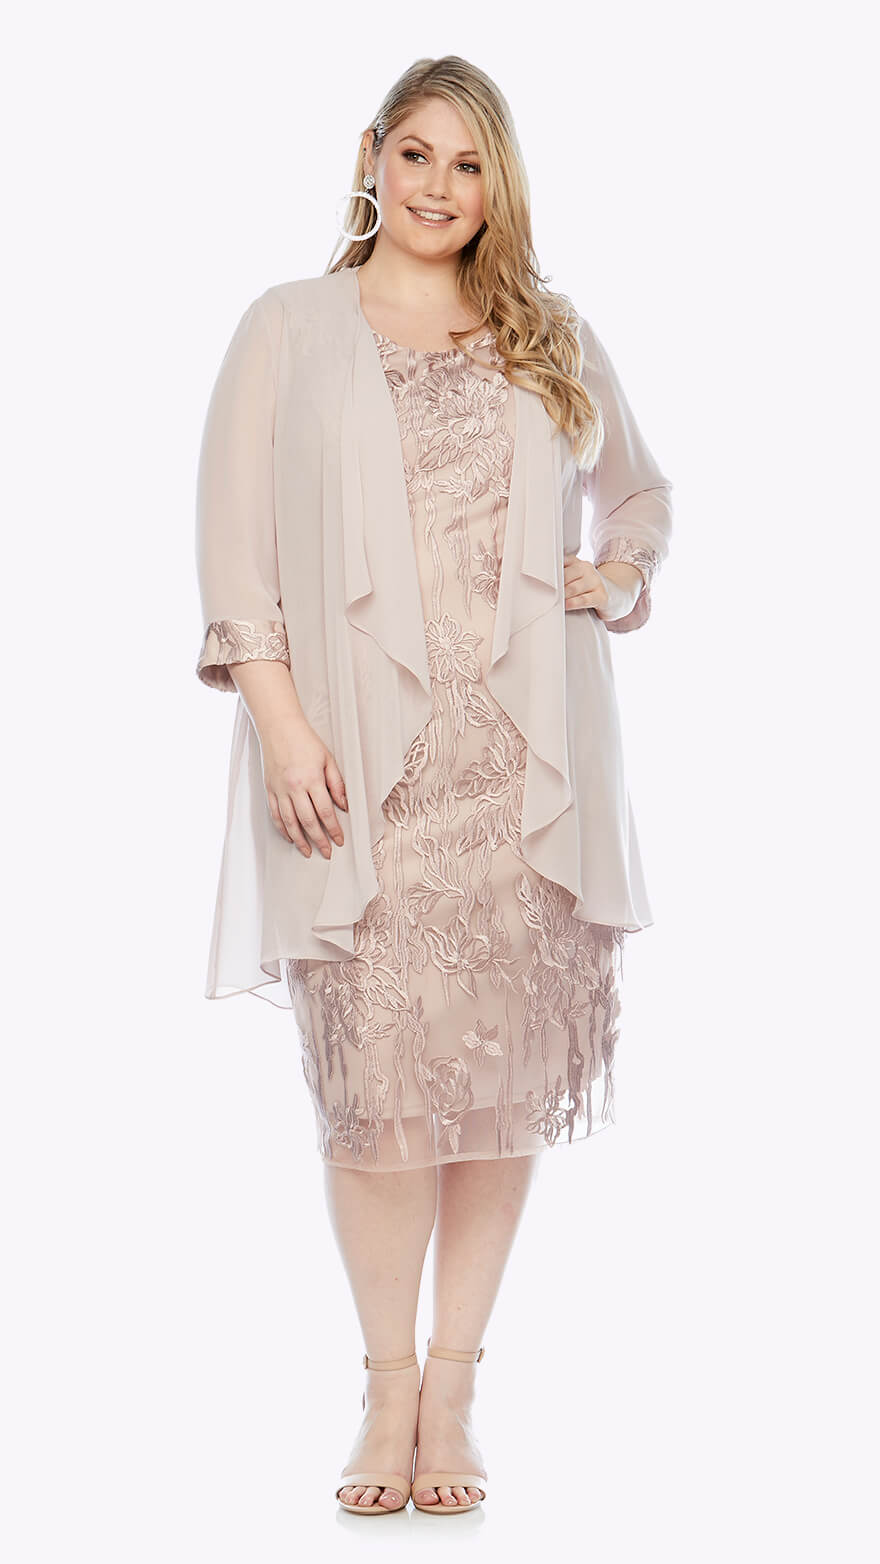 LJ0350 Knee-length graphic floral lace dress with matching waterfall chiffon jacket